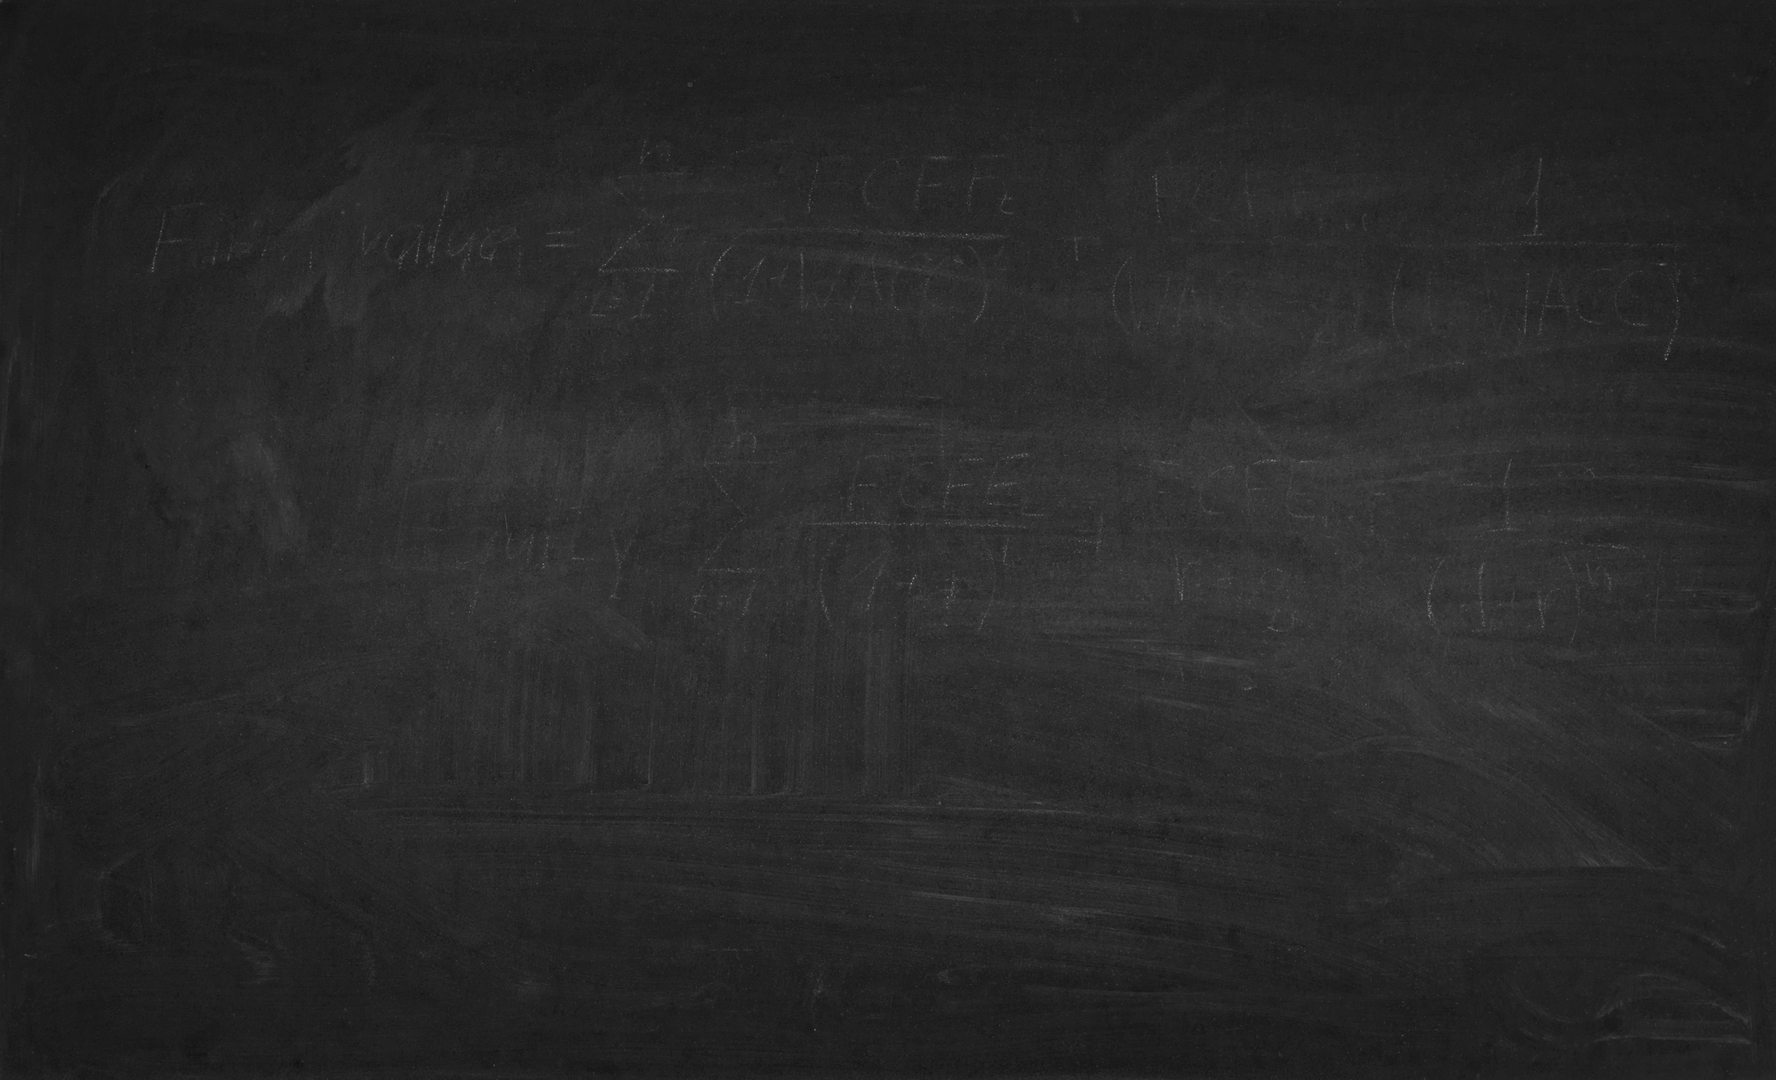 Unwashed black blackboard with textured remains of chalk